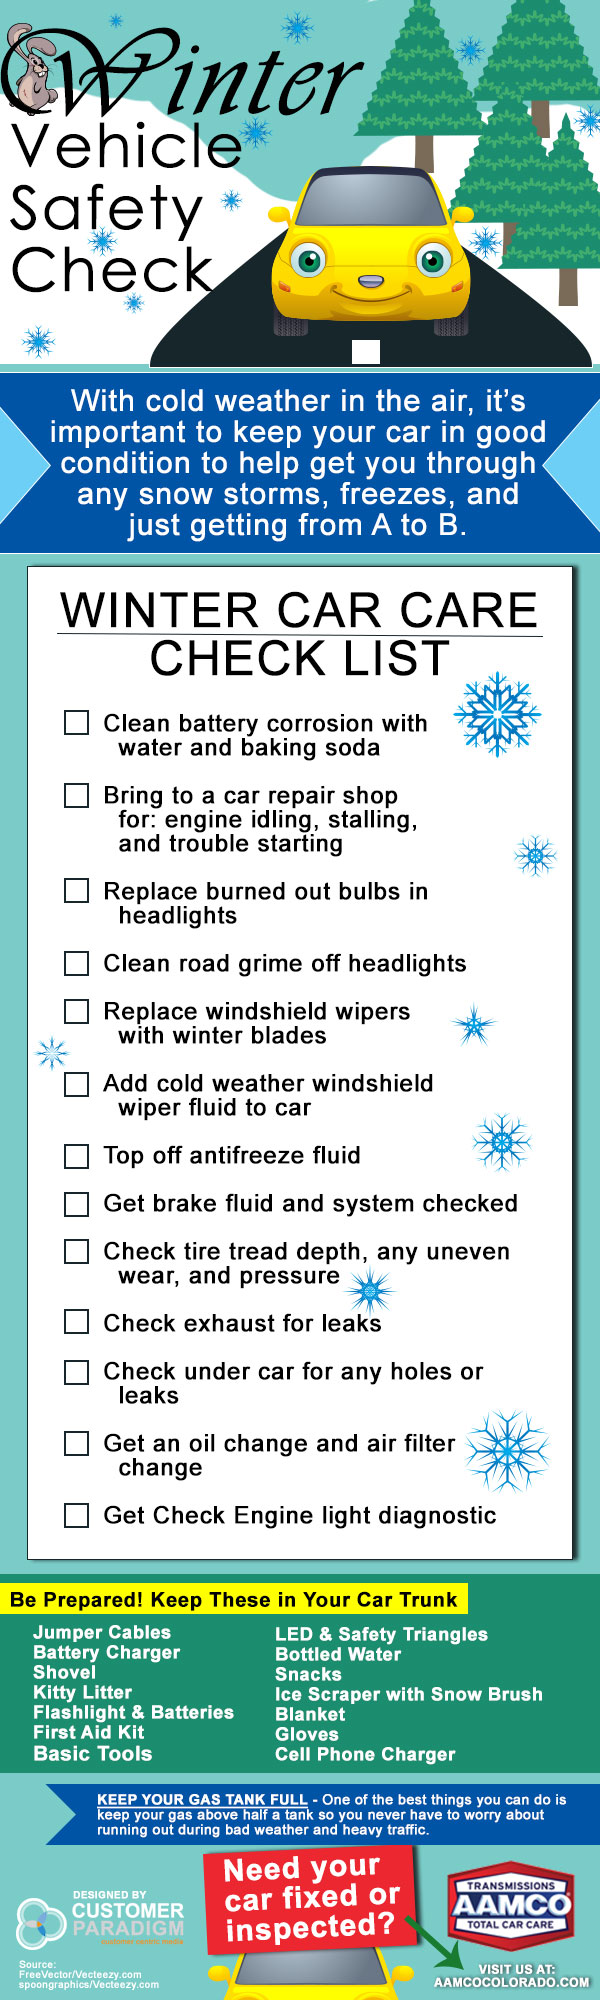 Winter Safety Checklist Infographic - AAMCO Colorado